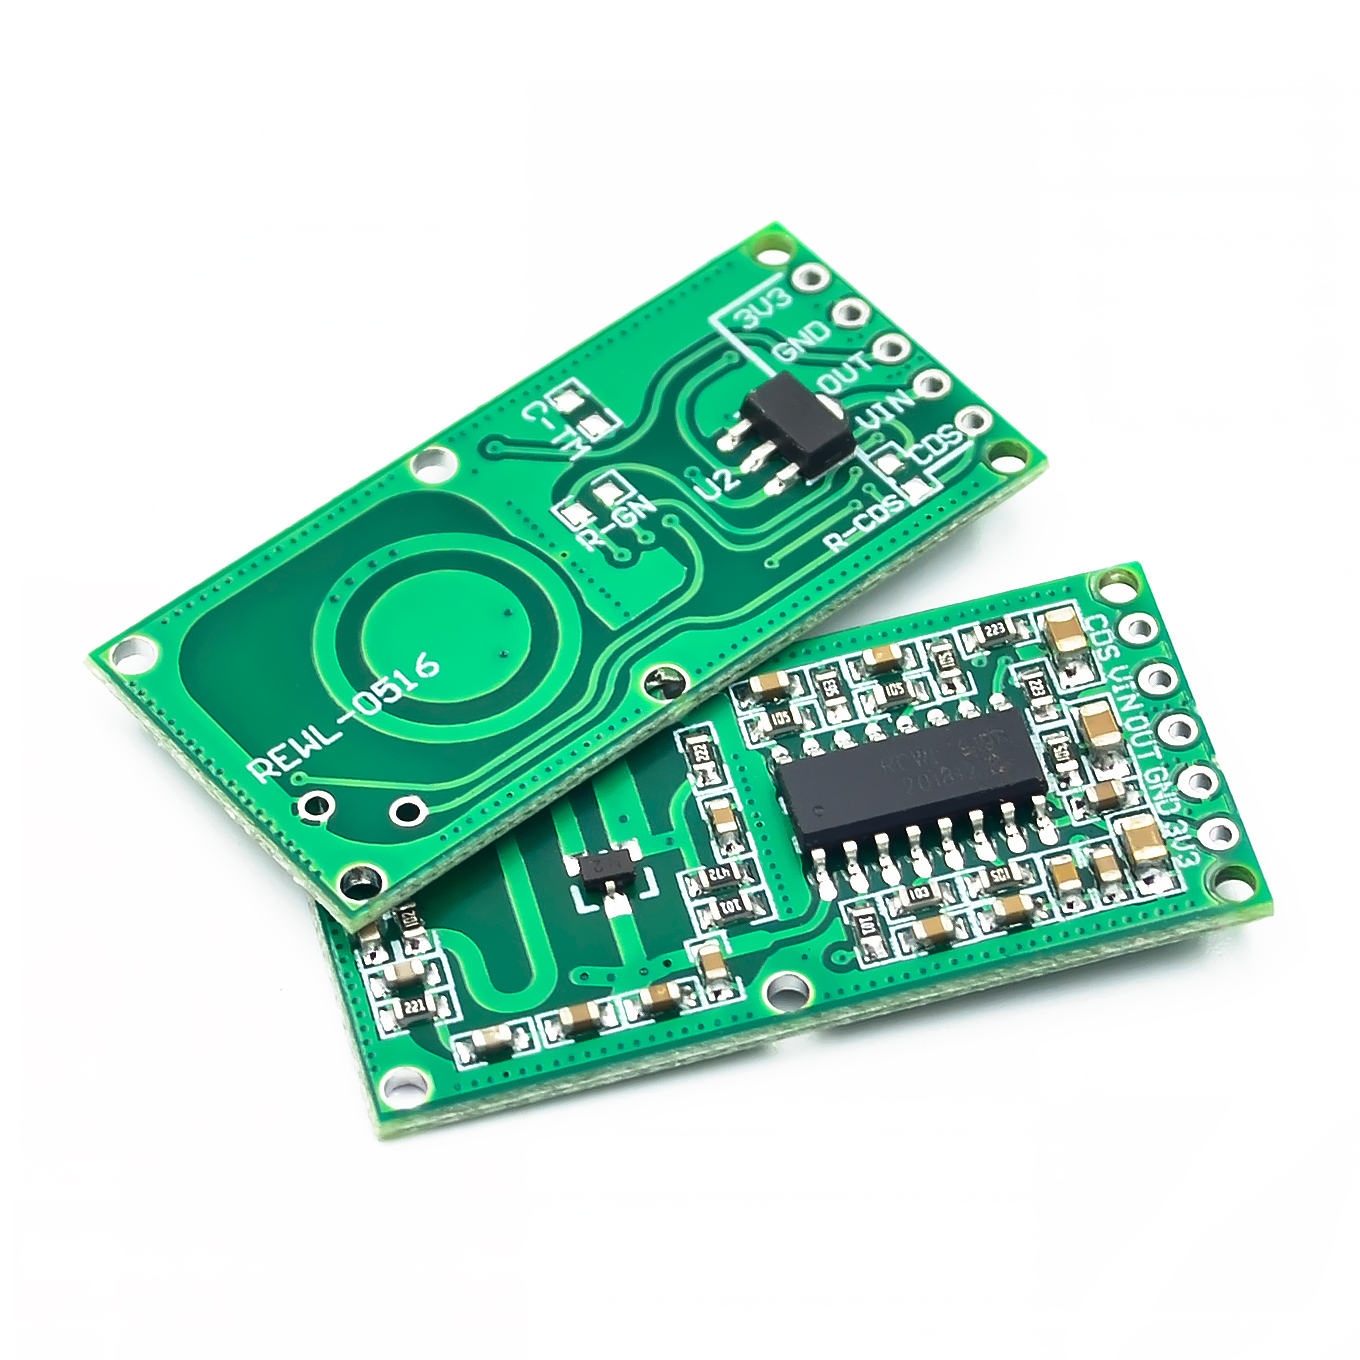 5PCS/LOT RCWL-0516 Microwave Radar Sensor Module Human Body Induction Switch Module Intelligent Sensor